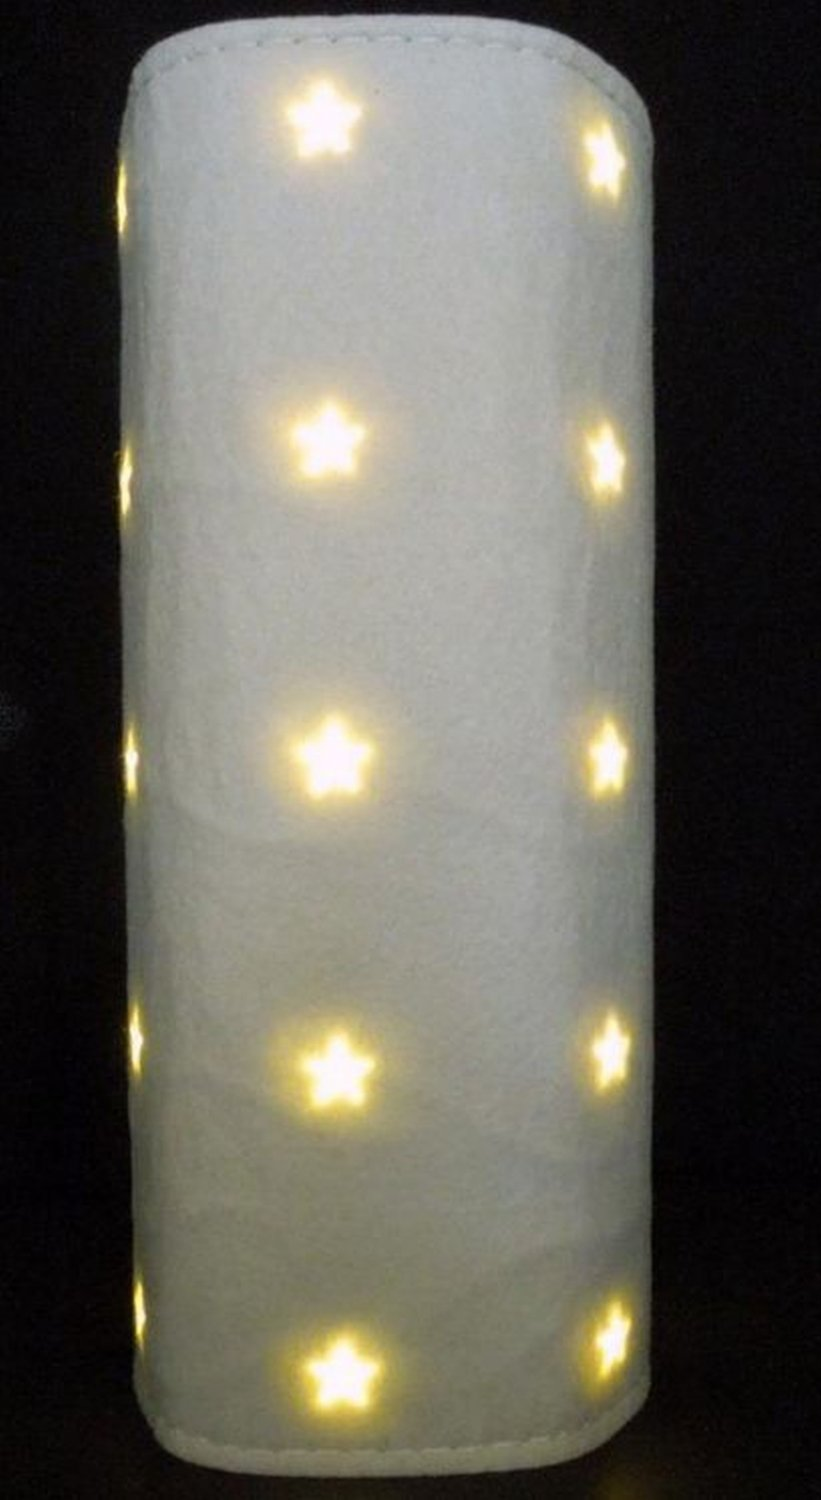 ikea kallt decoration cylinder light white xmas fabric gl nsa filt led panel glansa strala. Black Bedroom Furniture Sets. Home Design Ideas